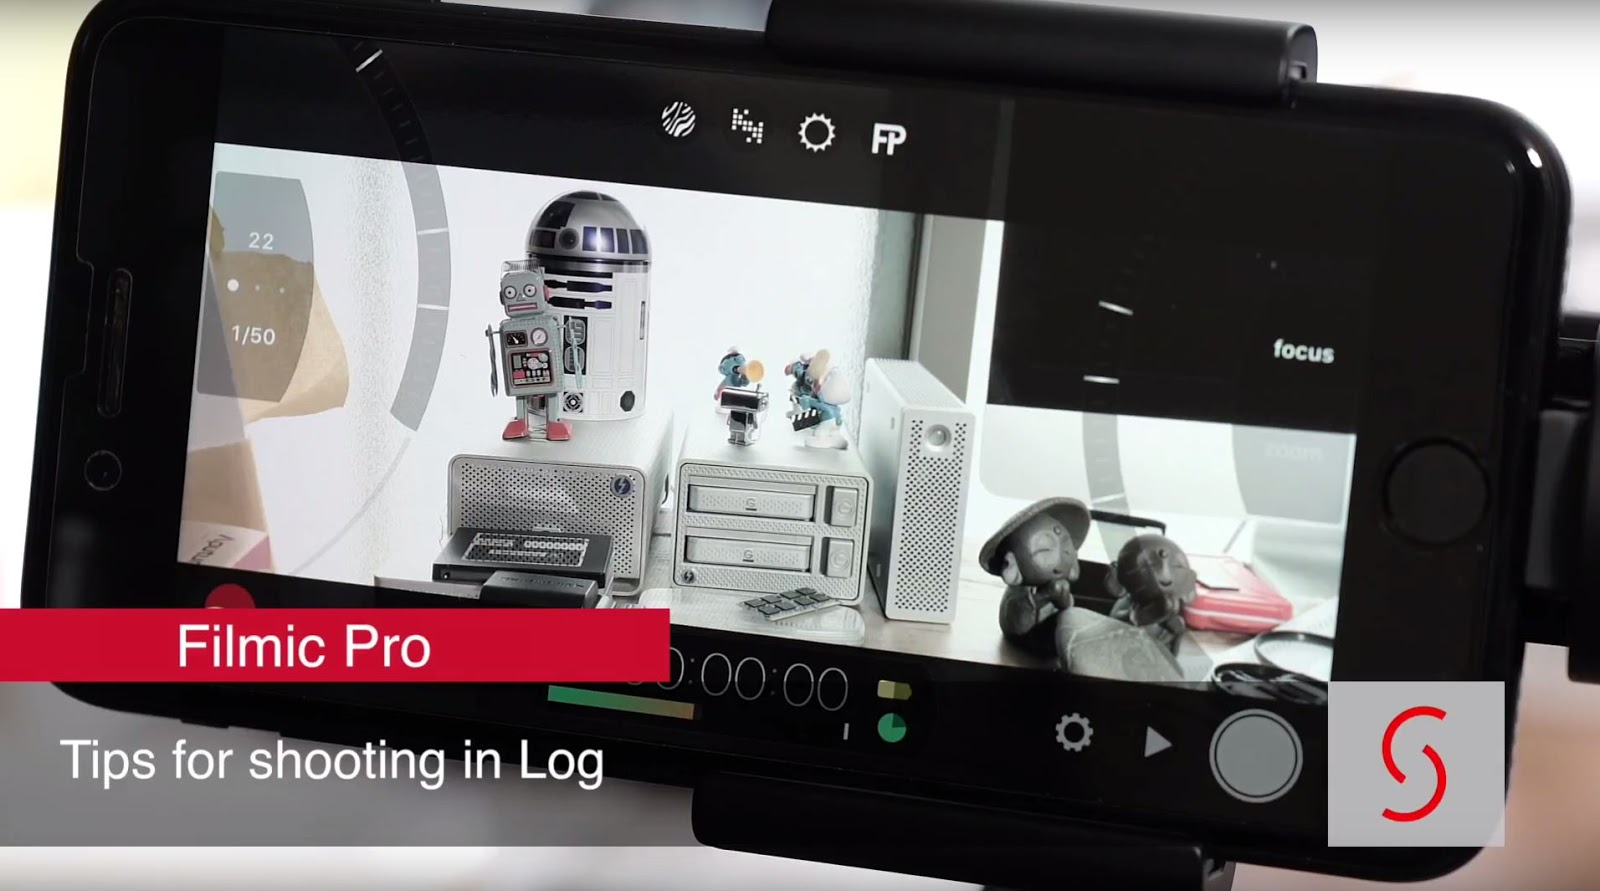 Filmic Pro Version 6: Tips for shooting Log on your iPhone